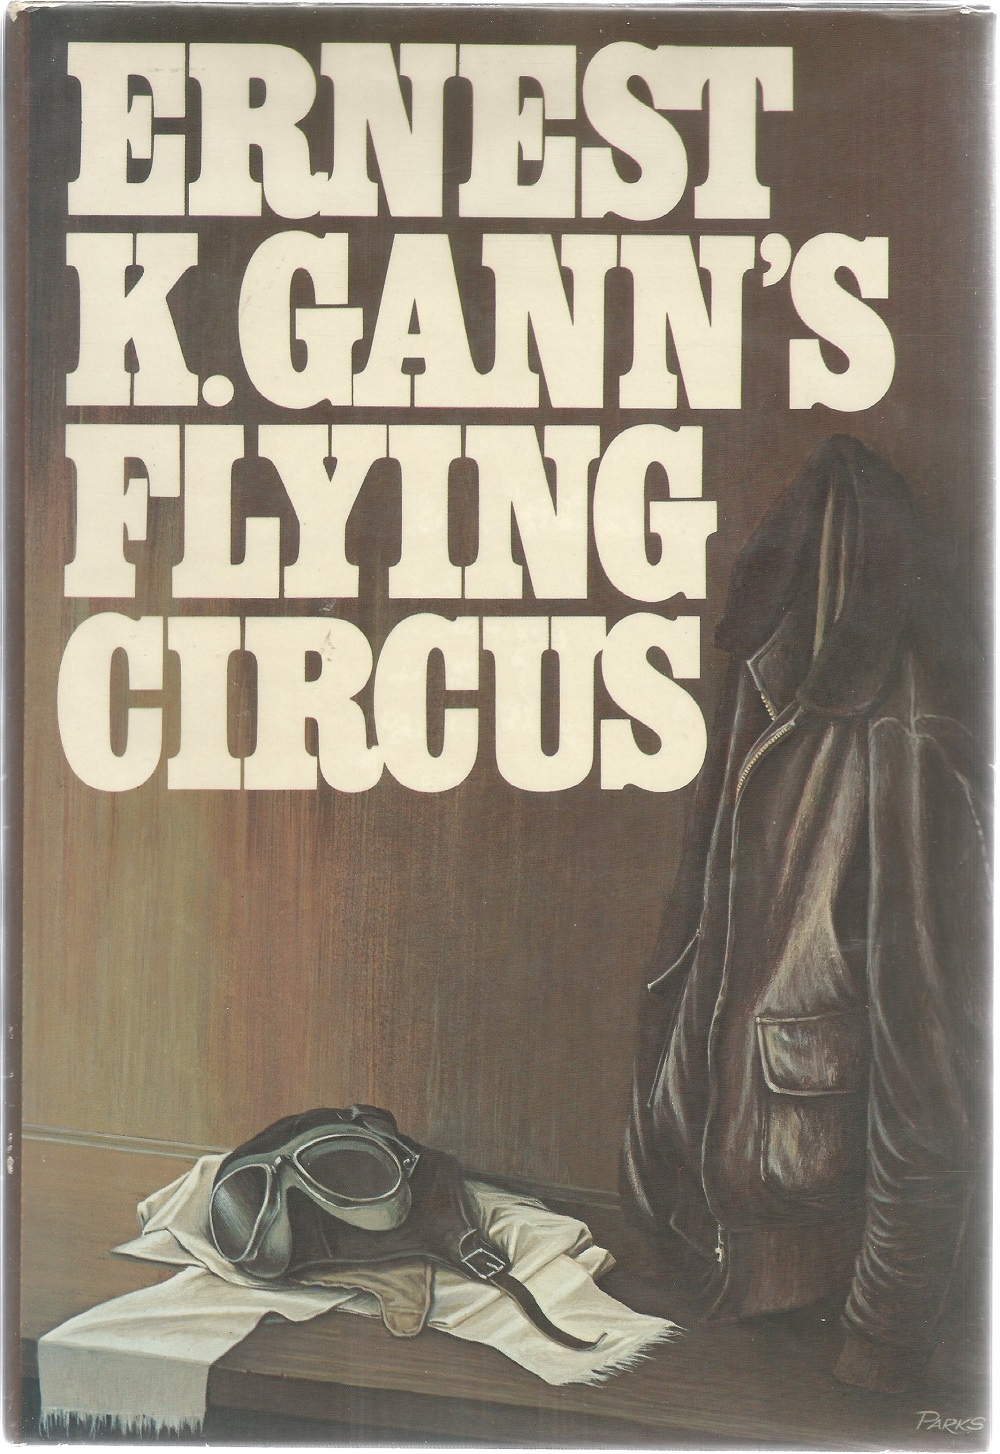 Ernest K. Ganns Flying Circus. A WW2 First Edition Hardback book. Signed on card which is glued into